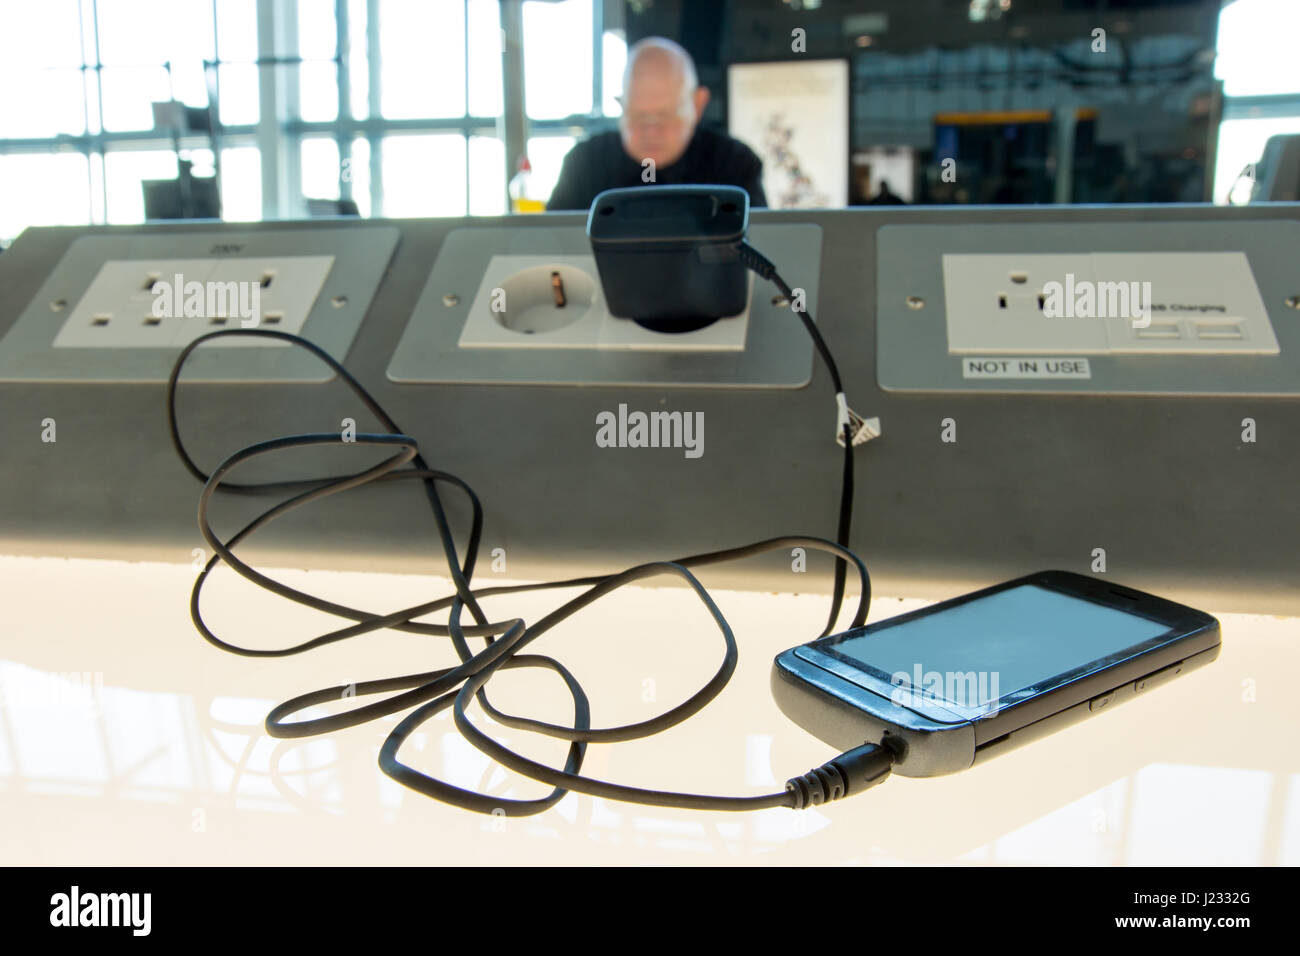 Mobile Phone Charging Station Stock Photos Amp Mobile Phone